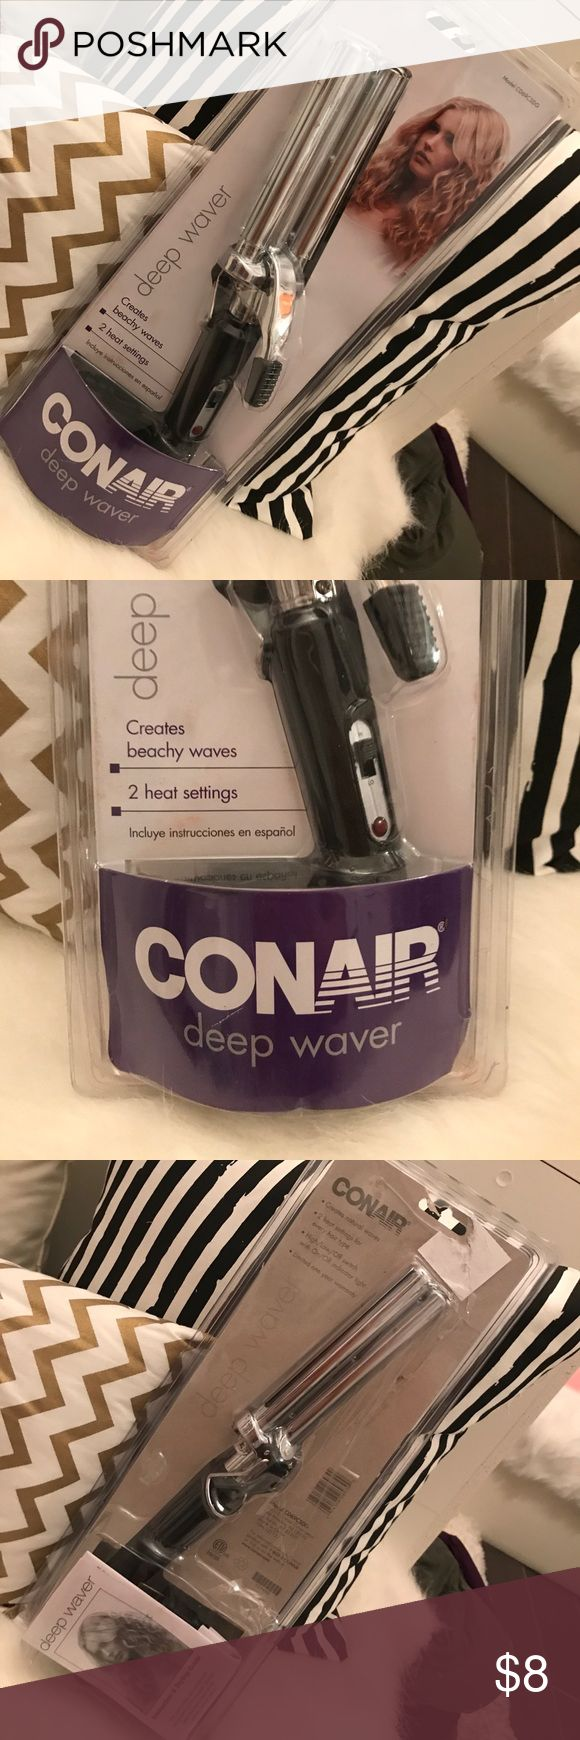 CONAIR deep waver CONAIR deed waver Accessories Hair Accessories